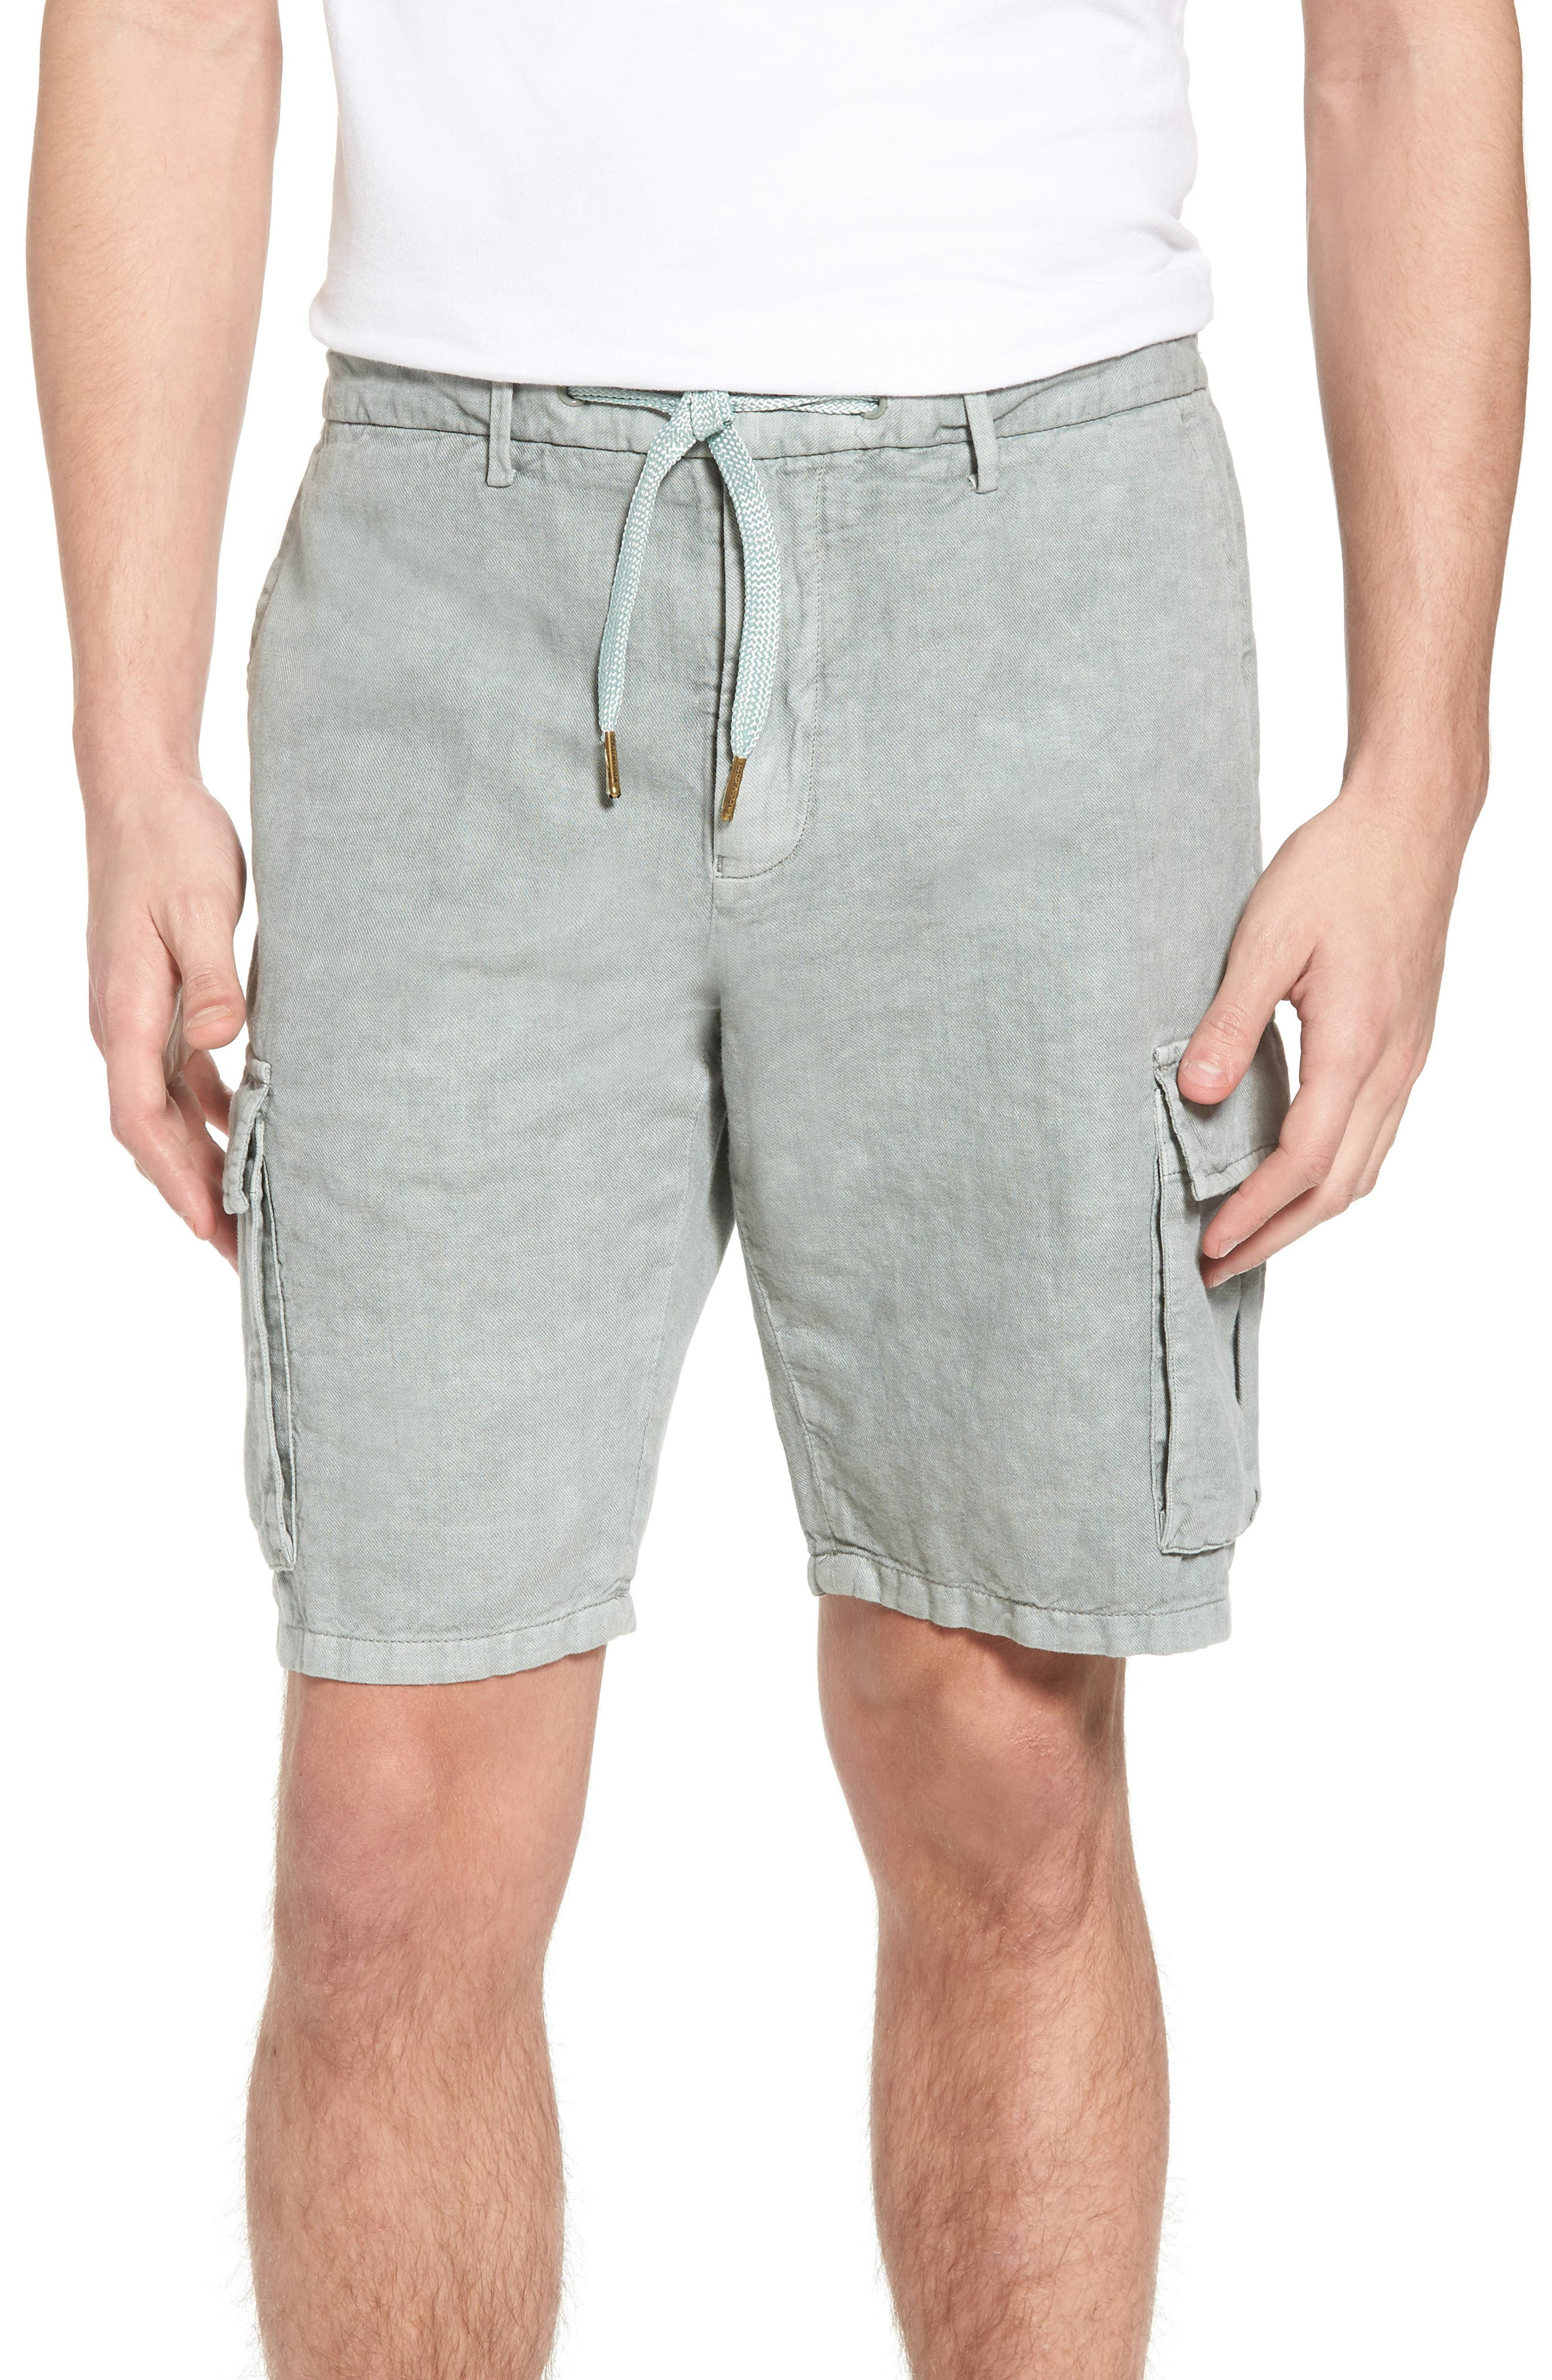 Scotch & Soda Garment Dyed Cargo Shorts